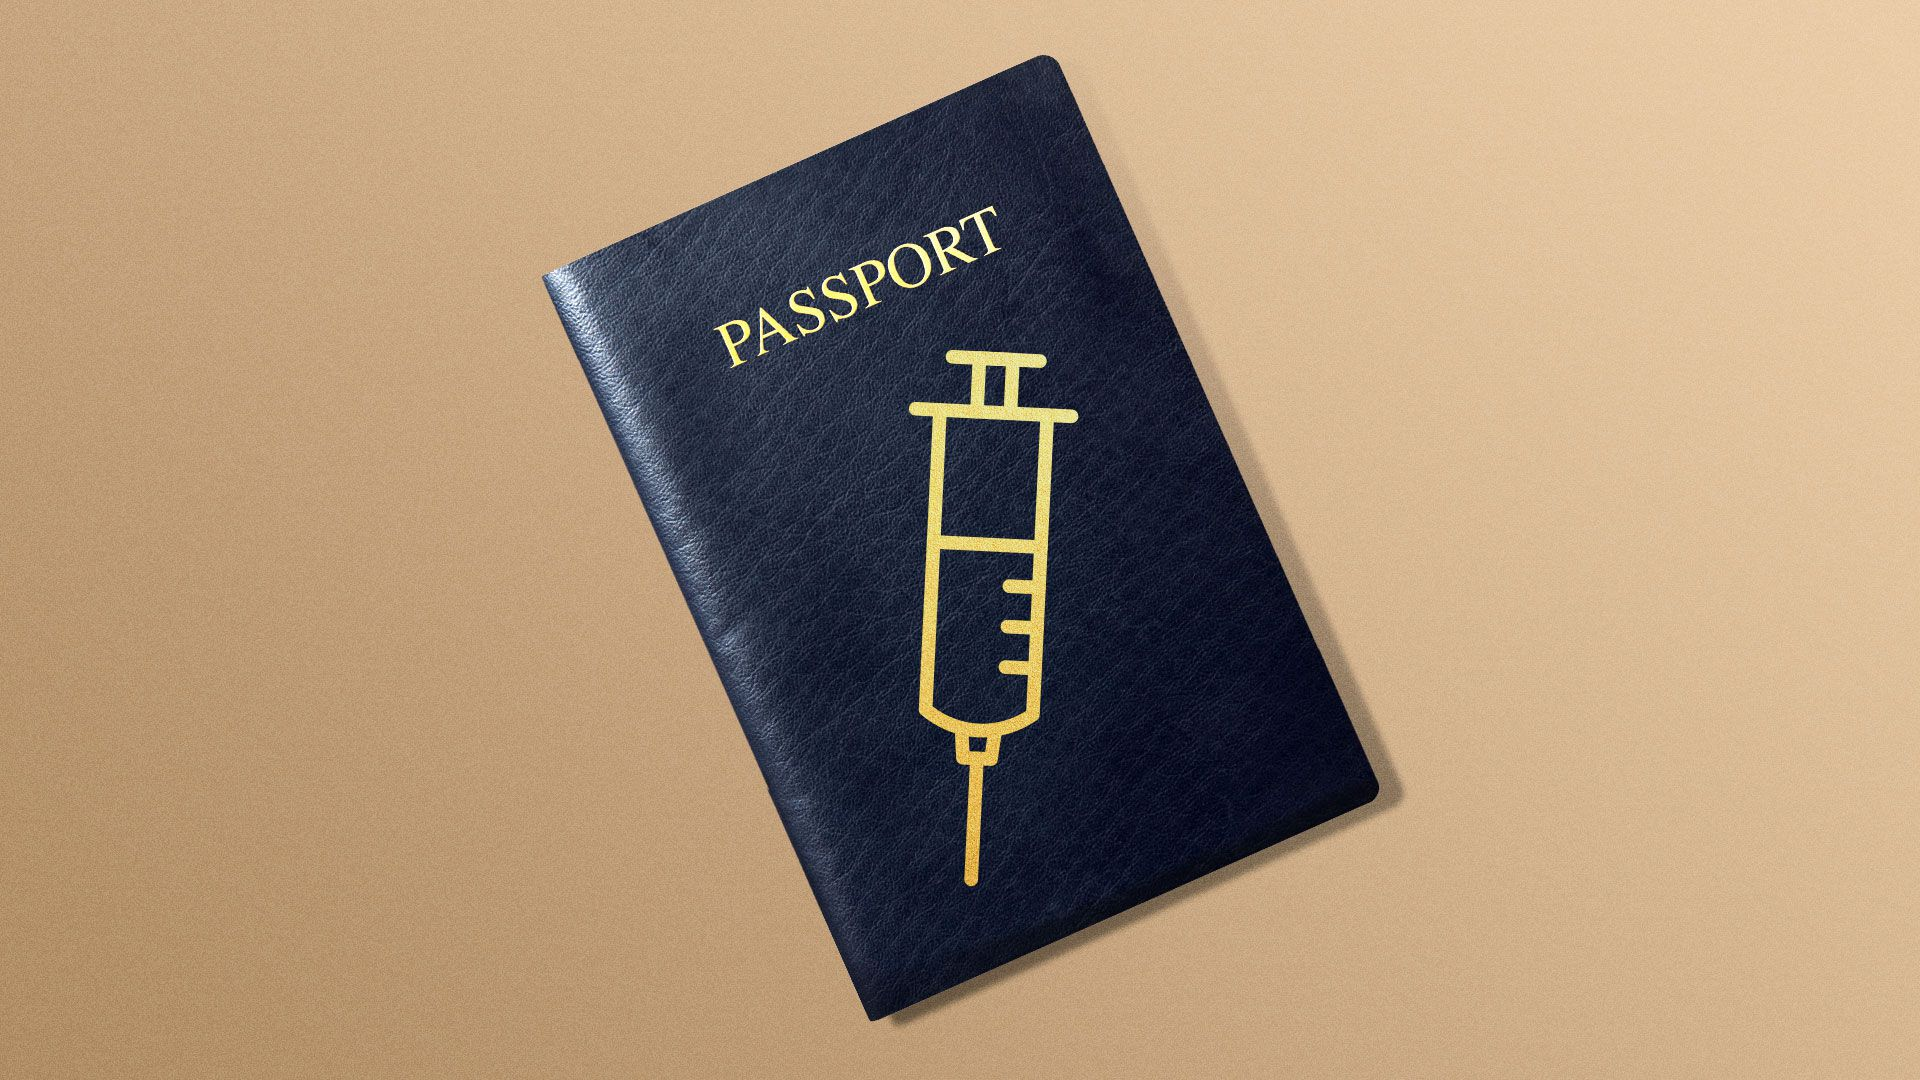 Illustration of a passport with a syringe on the cover.